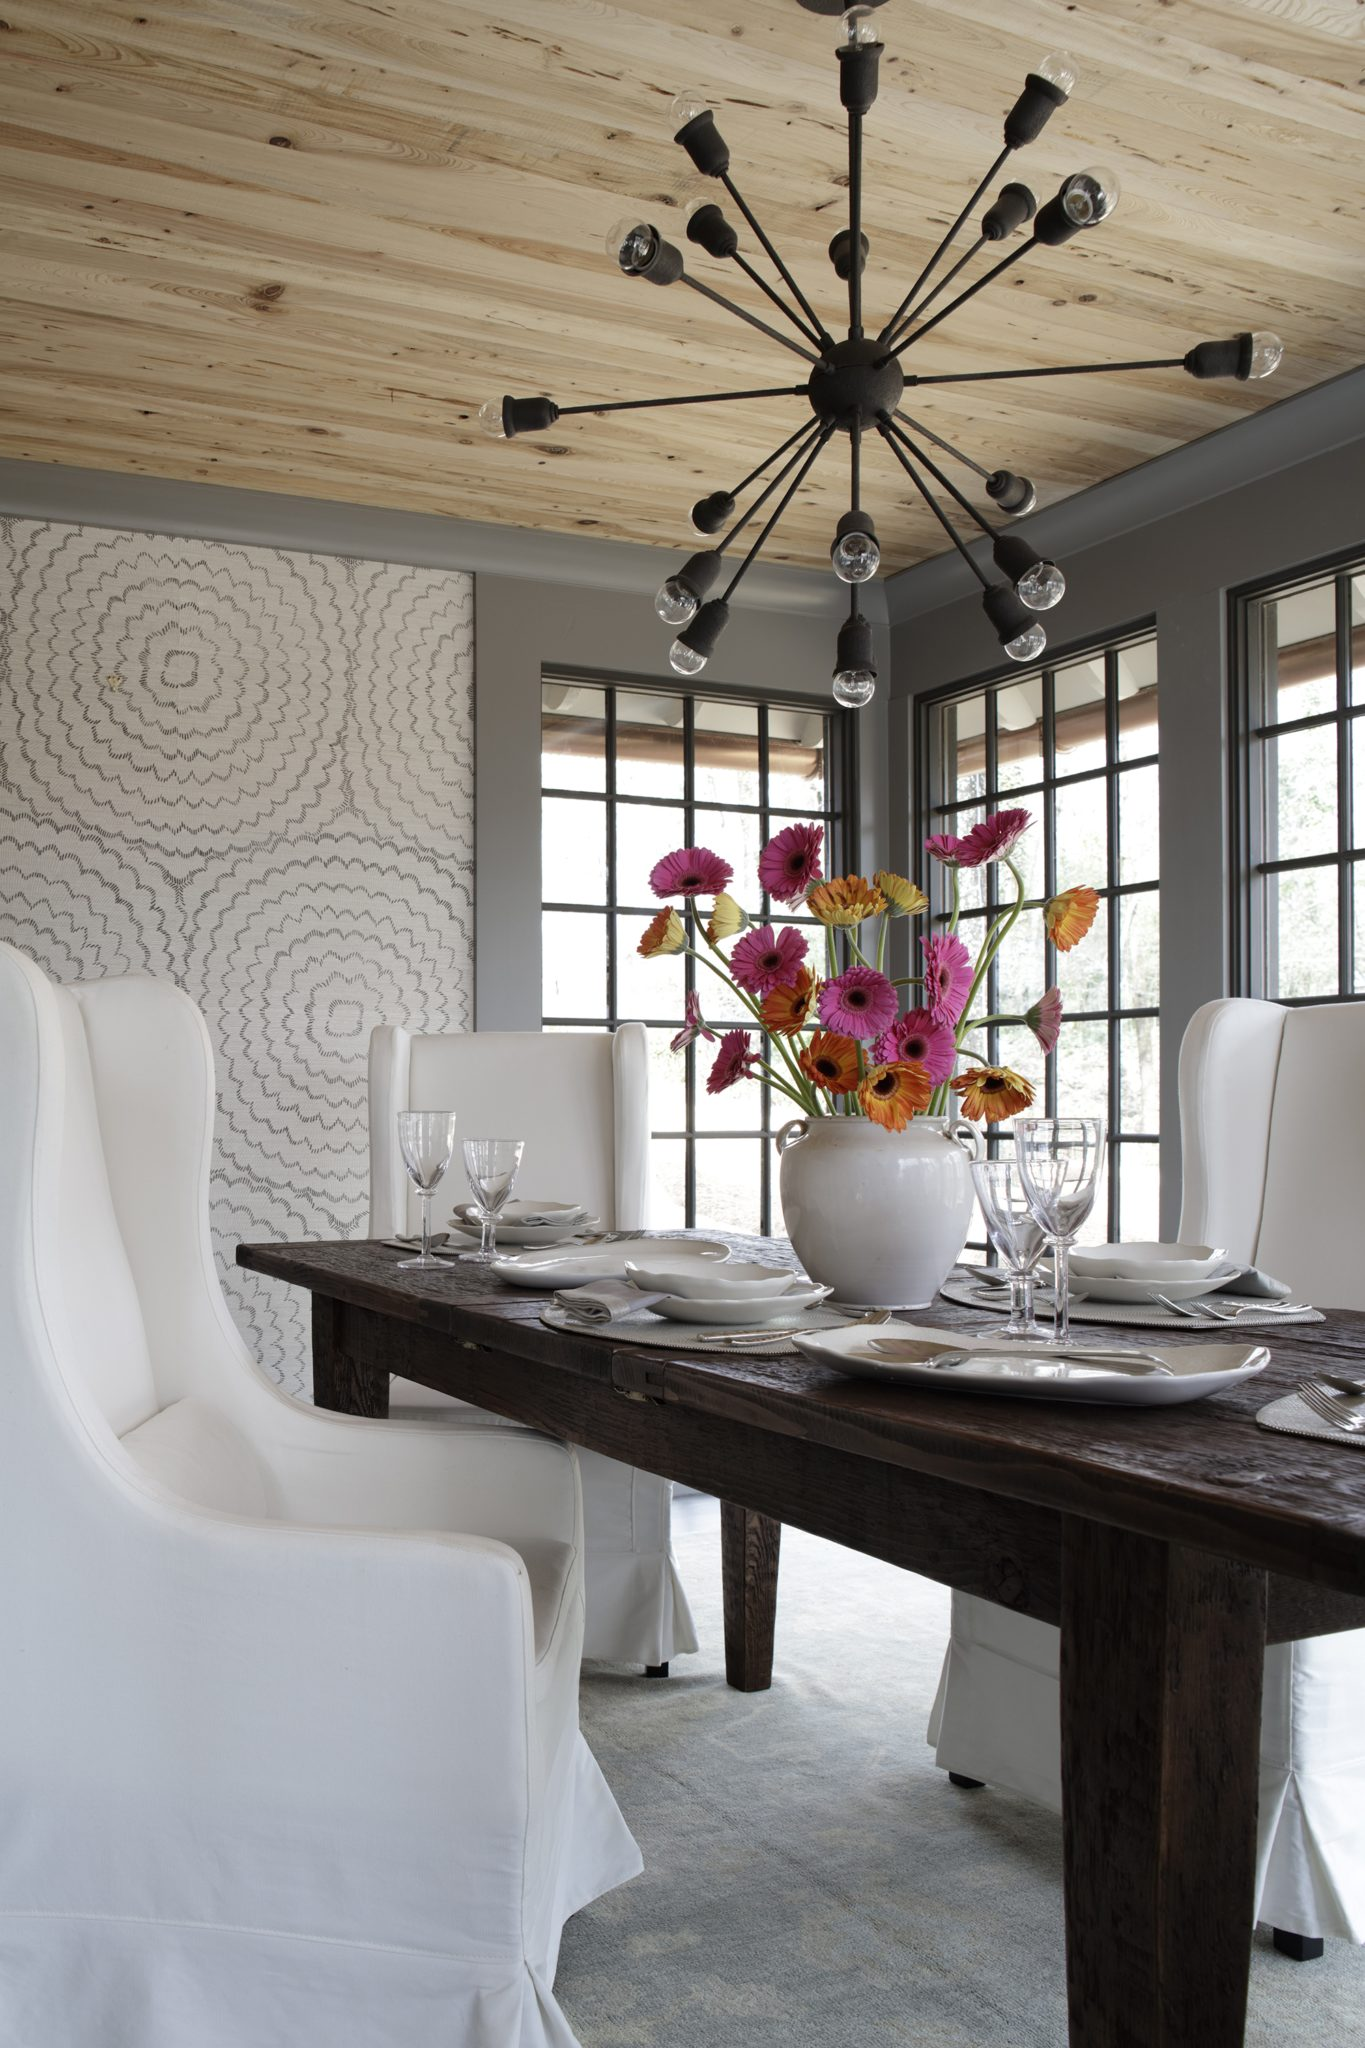 The dining room is creatively elegant, featuring a floral Schumacher wallcovering that accents the space. The table is an antique from Argent Antiques in Homewood, Alabama; the chairs are also from Argent Antiques, and the chandelier is from Currey & Company.